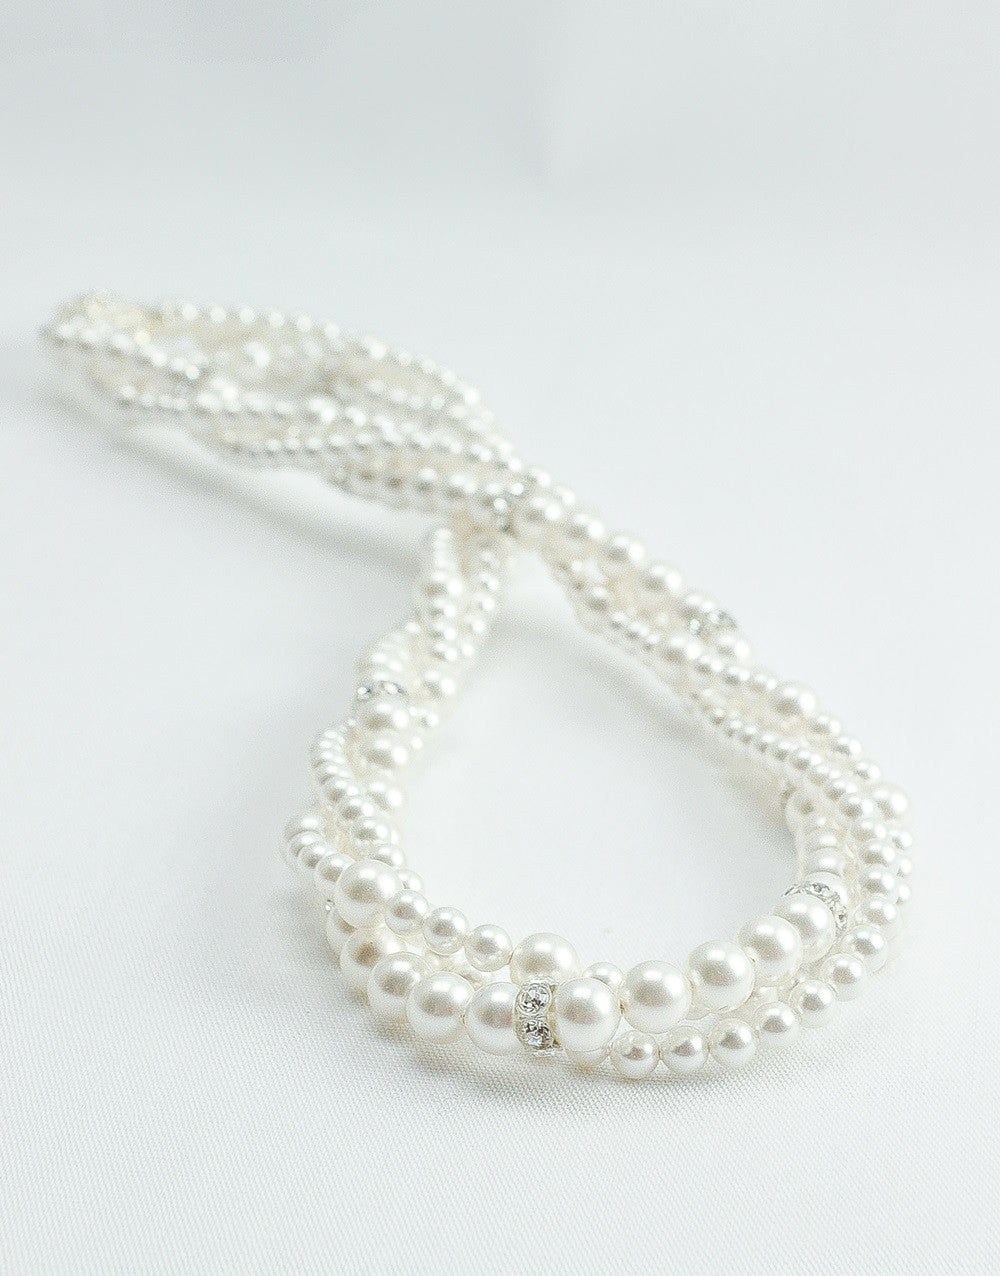 Multi Strand Pearl Necklace For A Sweetheart Neckline